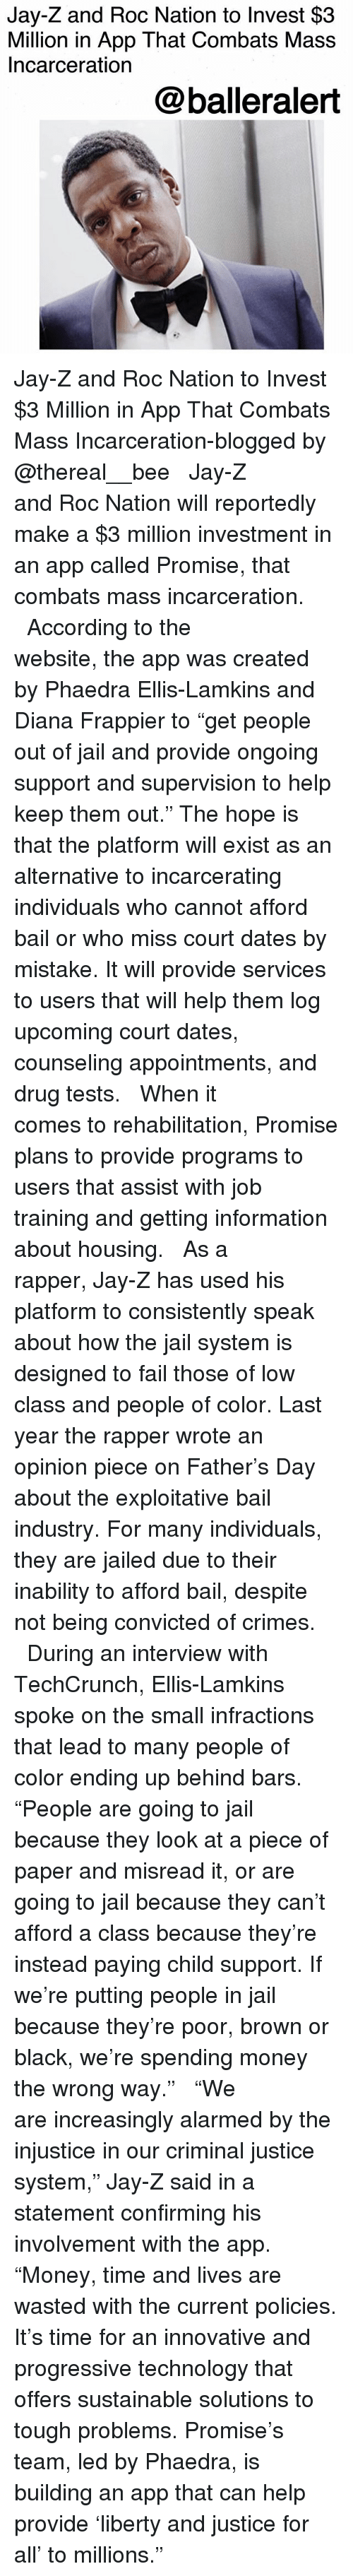 """Child Support, Fail, and Jail: Jay-Z and Roc Nation to Invest $3  Million in App That Combats Mass  Incarceration  @balleralert Jay-Z and Roc Nation to Invest $3 Million in App That Combats Mass Incarceration-blogged by @thereal__bee ⠀⠀⠀⠀⠀⠀⠀⠀⠀ ⠀⠀ Jay-Z and Roc Nation will reportedly make a $3 million investment in an app called Promise, that combats mass incarceration. ⠀⠀⠀⠀⠀⠀⠀⠀⠀ ⠀⠀ According to the website, the app was created by Phaedra Ellis-Lamkins and Diana Frappier to """"get people out of jail and provide ongoing support and supervision to help keep them out."""" The hope is that the platform will exist as an alternative to incarcerating individuals who cannot afford bail or who miss court dates by mistake. It will provide services to users that will help them log upcoming court dates, counseling appointments, and drug tests. ⠀⠀⠀⠀⠀⠀⠀⠀⠀ ⠀⠀ When it comes to rehabilitation, Promise plans to provide programs to users that assist with job training and getting information about housing. ⠀⠀⠀⠀⠀⠀⠀⠀⠀ ⠀⠀ As a rapper, Jay-Z has used his platform to consistently speak about how the jail system is designed to fail those of low class and people of color. Last year the rapper wrote an opinion piece on Father's Day about the exploitative bail industry. For many individuals, they are jailed due to their inability to afford bail, despite not being convicted of crimes. ⠀⠀⠀⠀⠀⠀⠀⠀⠀ ⠀⠀ During an interview with TechCrunch, Ellis-Lamkins spoke on the small infractions that lead to many people of color ending up behind bars. """"People are going to jail because they look at a piece of paper and misread it, or are going to jail because they can't afford a class because they're instead paying child support. If we're putting people in jail because they're poor, brown or black, we're spending money the wrong way."""" ⠀⠀⠀⠀⠀⠀⠀⠀⠀ ⠀⠀ """"We are increasingly alarmed by the injustice in our criminal justice system,"""" Jay-Z said in a statement confirming his involvement with the app. """"Money, time and lives are wa"""